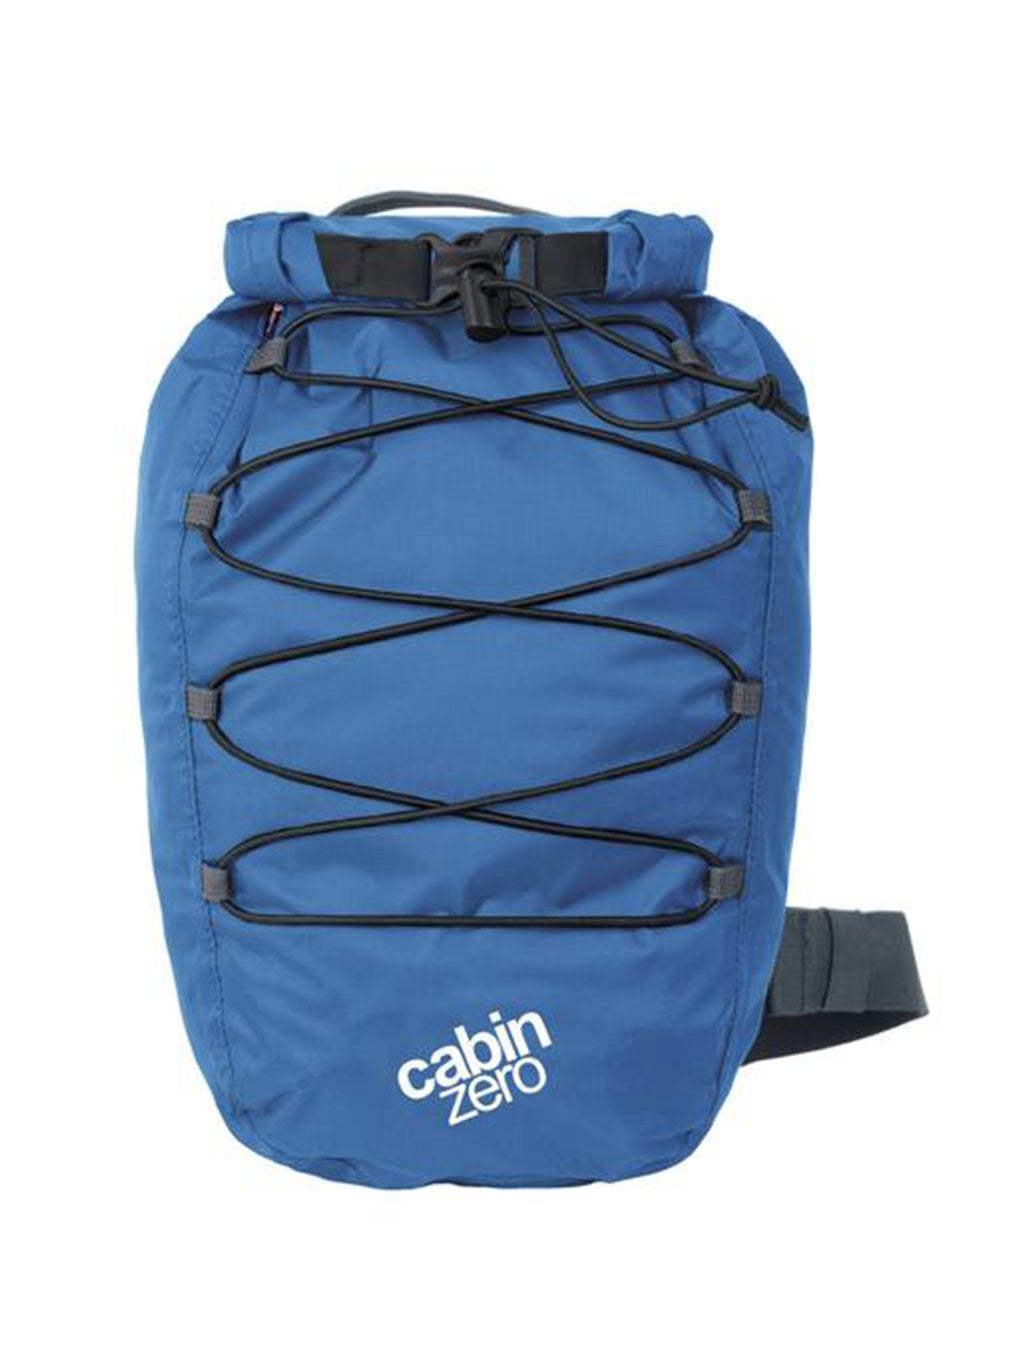 Cabinzero ADV Dry Waterproof Cross Body Bay 11L in Atlantic Blue Color